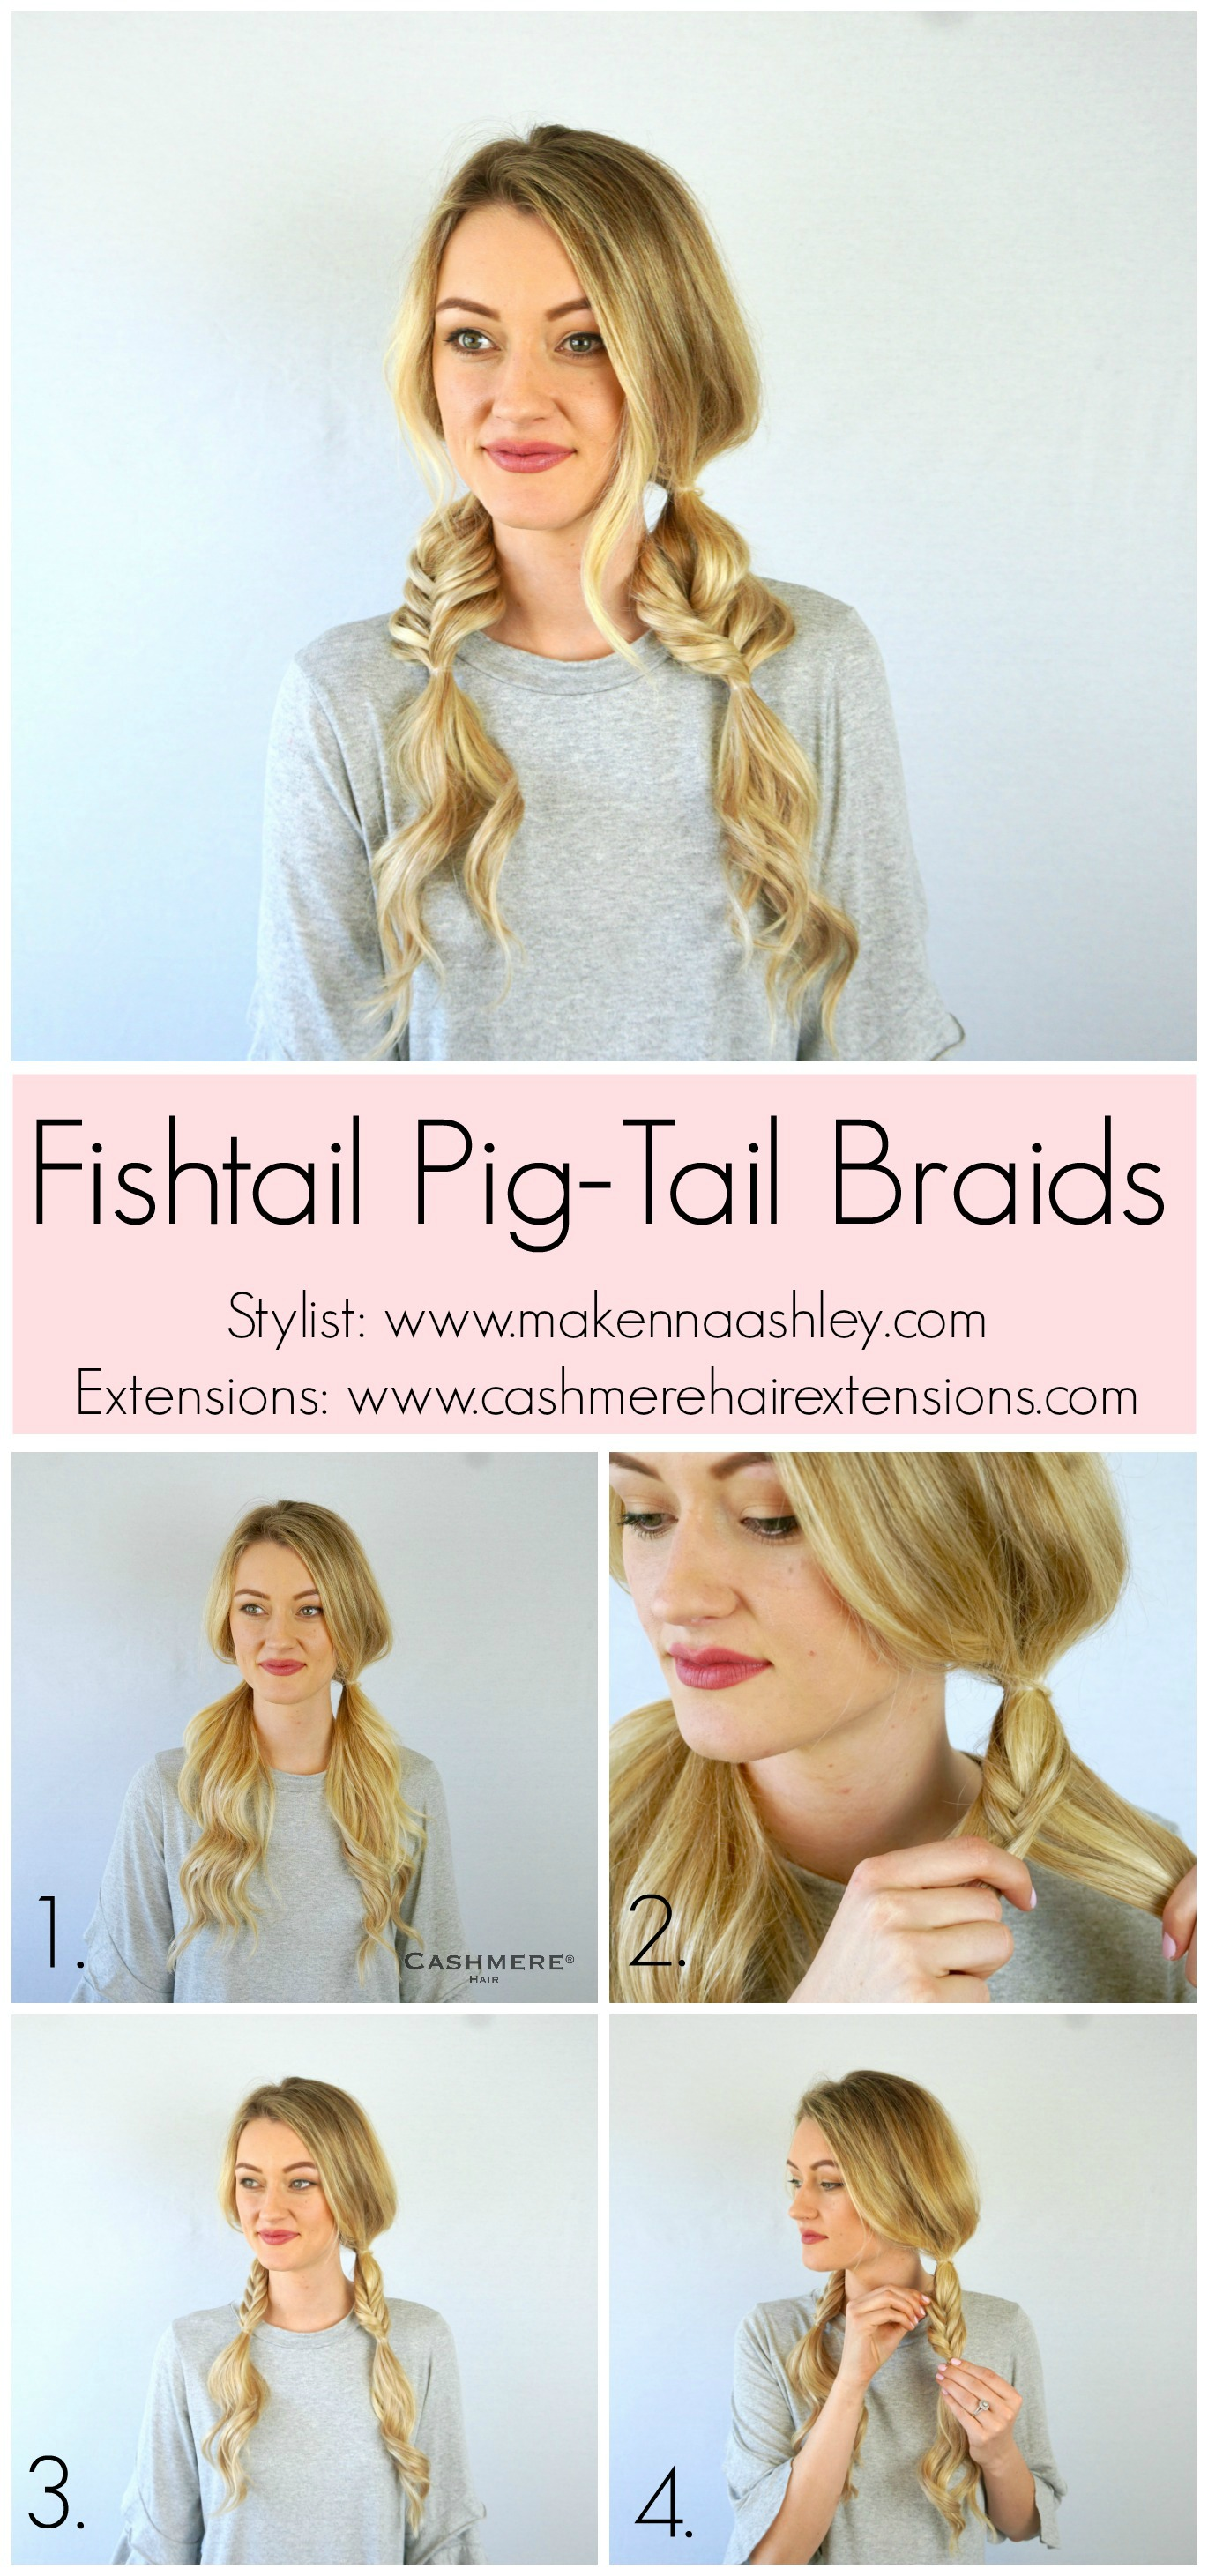 Mini Fishtail Pig Tail Braids